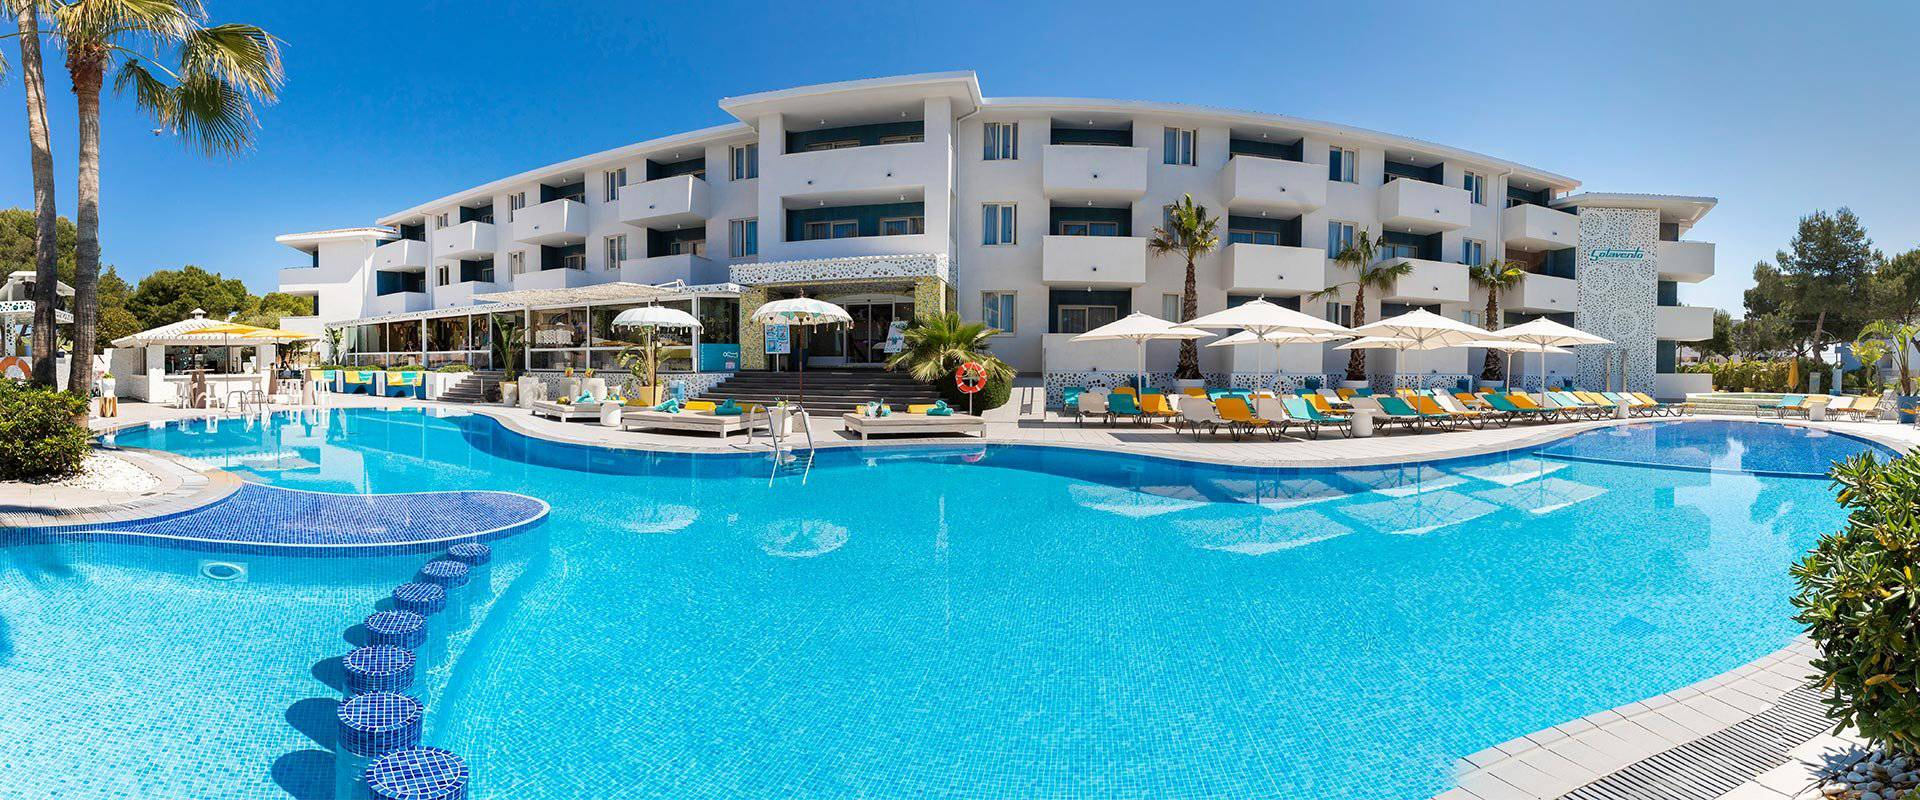 The true meaning of an exceptional vacation in Magaluf Hotel Sotavento Club Apartments Magaluf